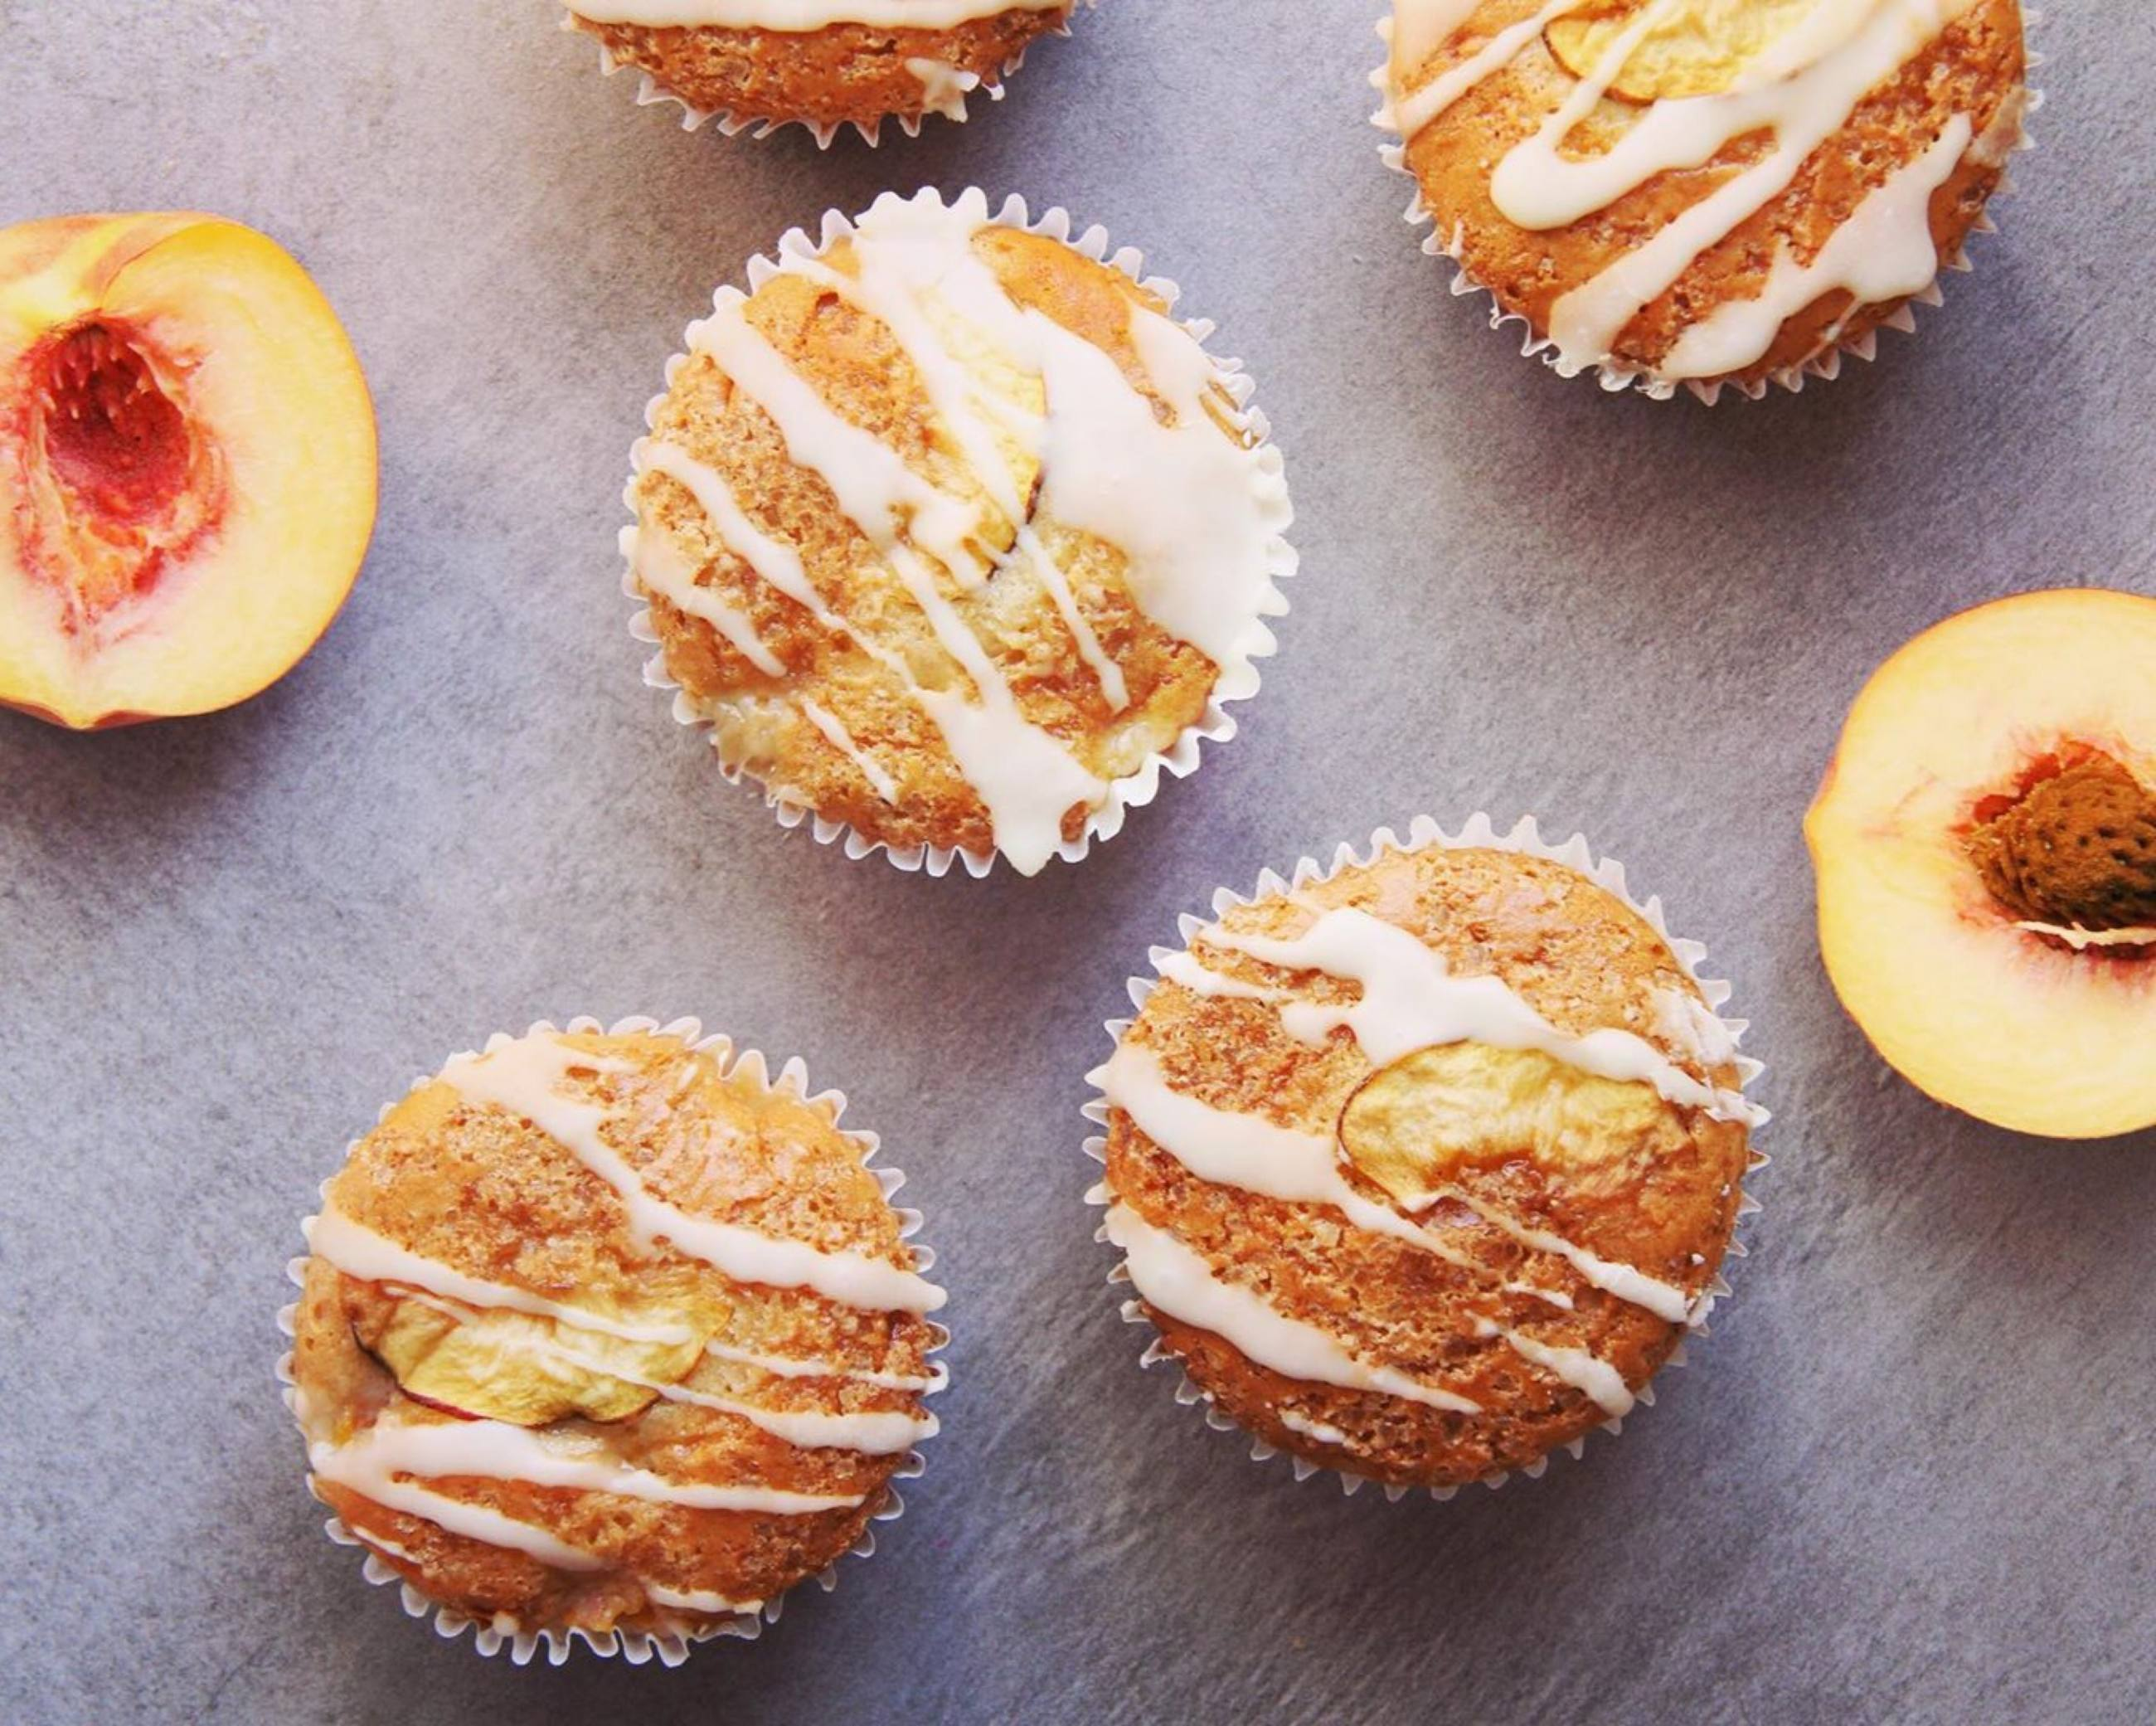 Vegan Peaches & Cream Muffins at The Good Good